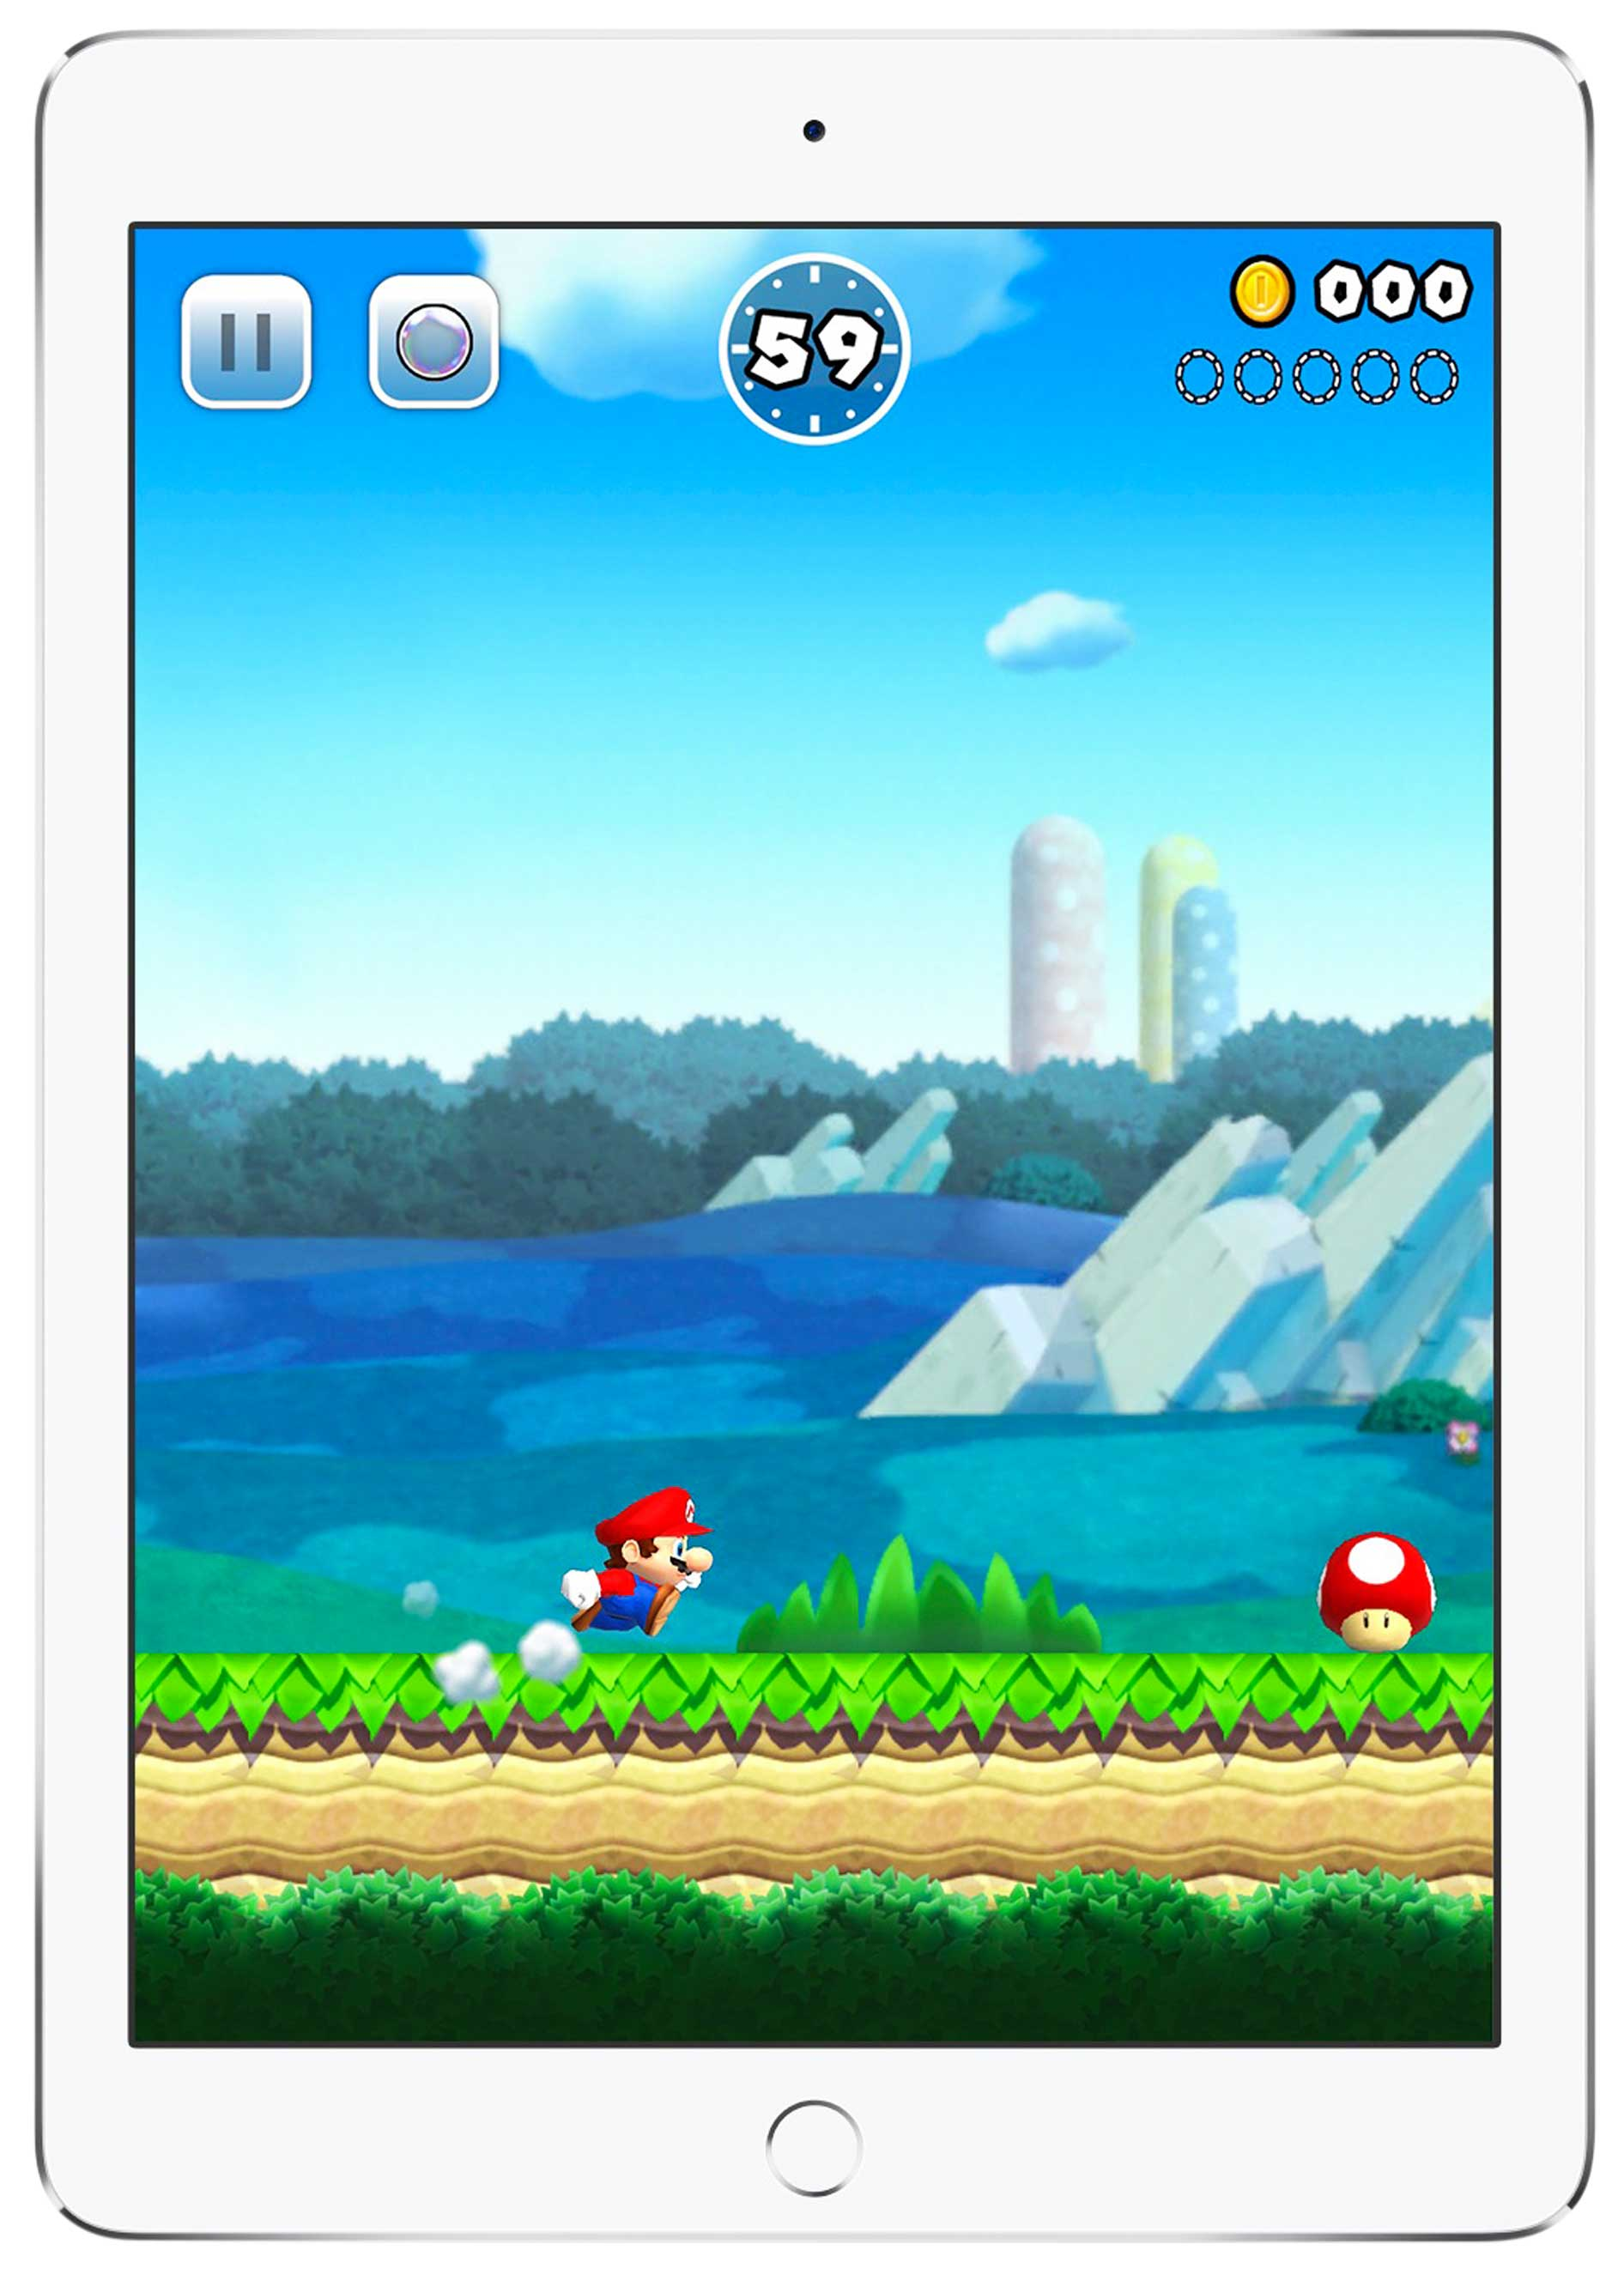 Nintendo's first Mario game for iPhones and iPads proves the firm can create fun on mobile gadgets